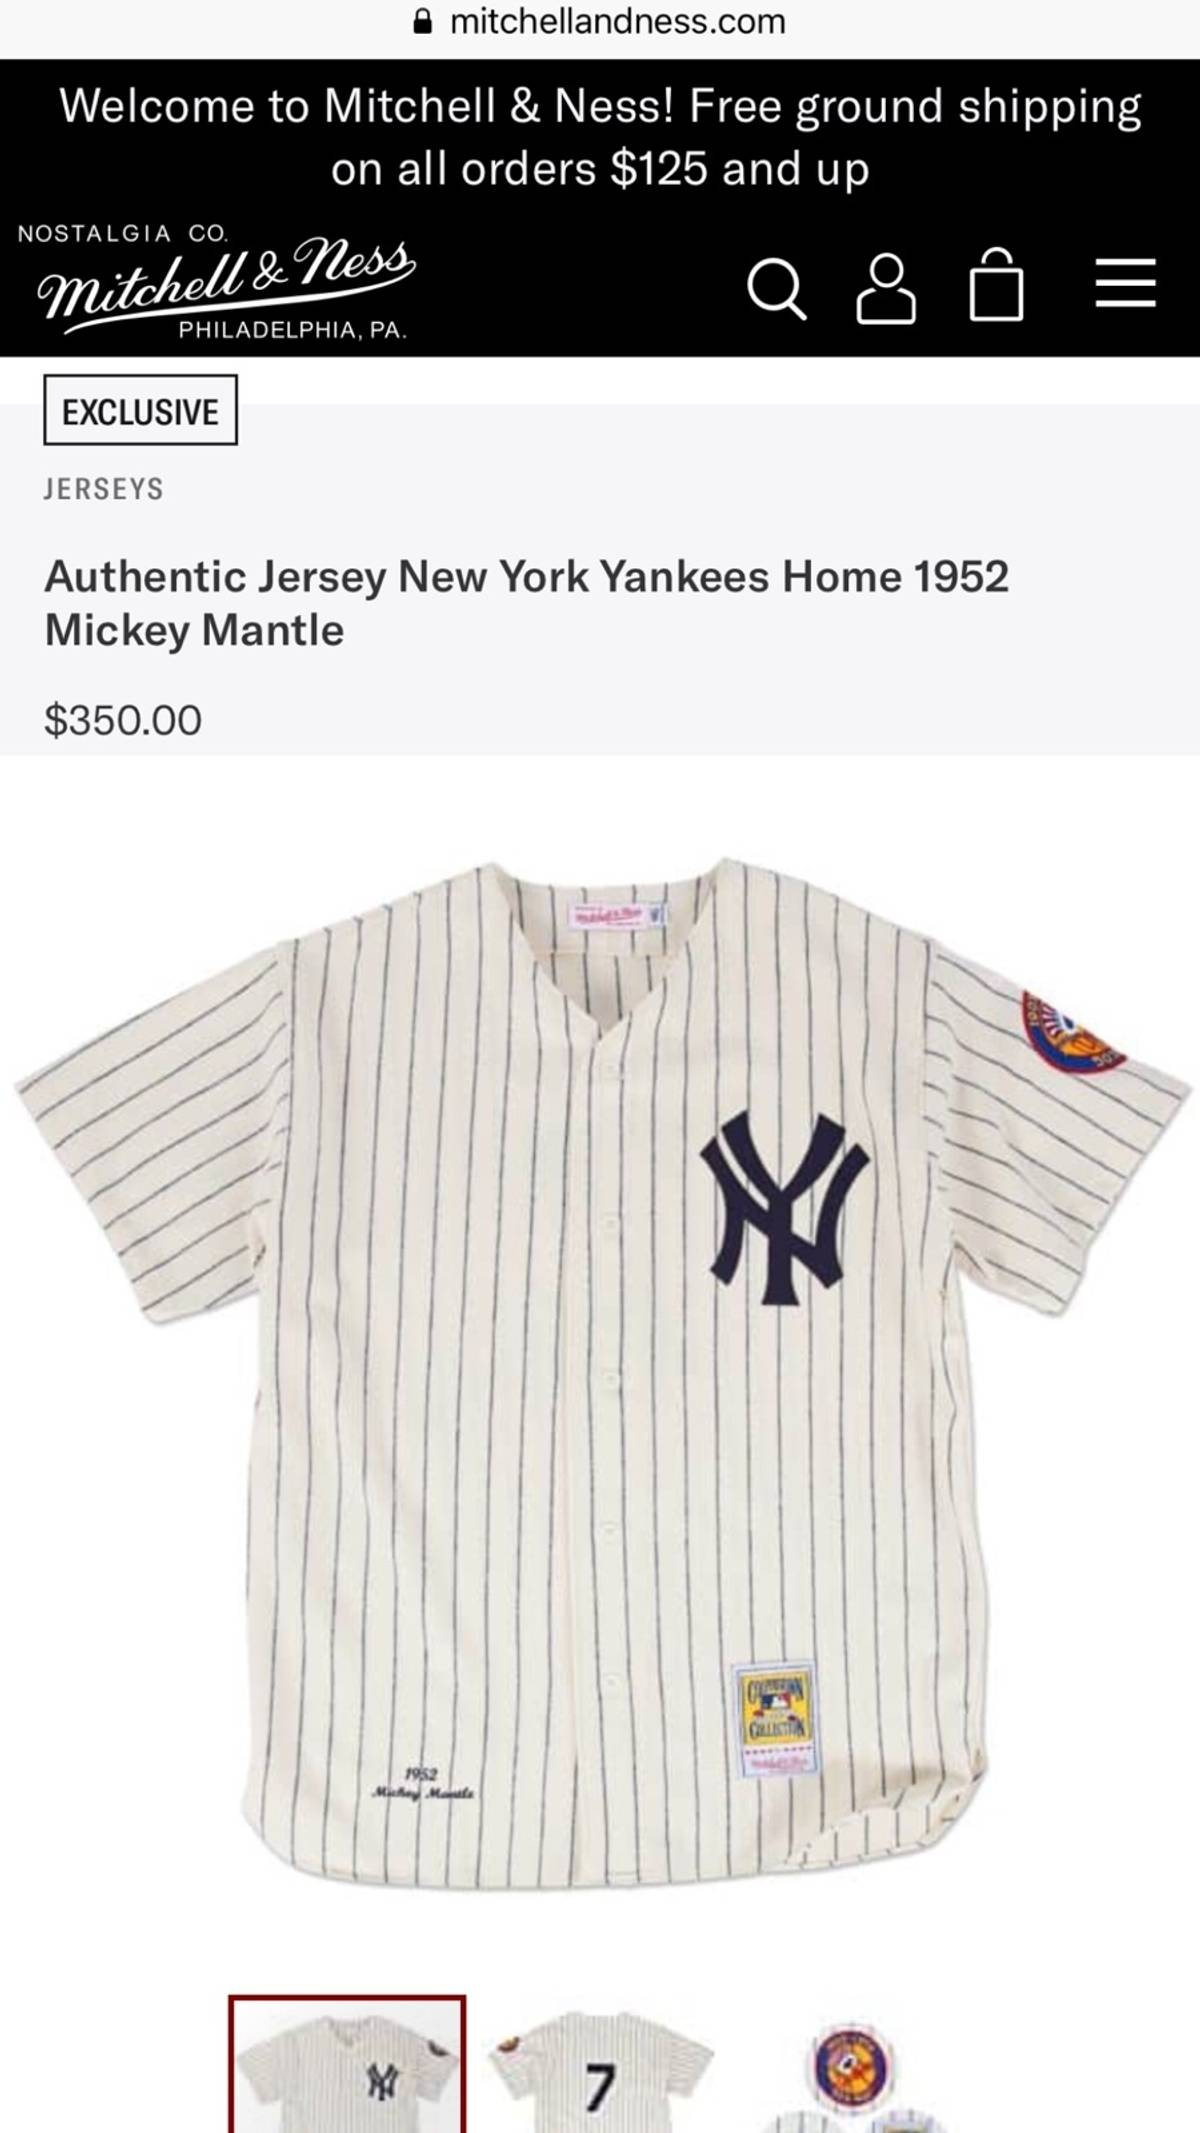 new products 644d0 1832e Mitchell & Ness Mickey Mantle Jersey Size L $145